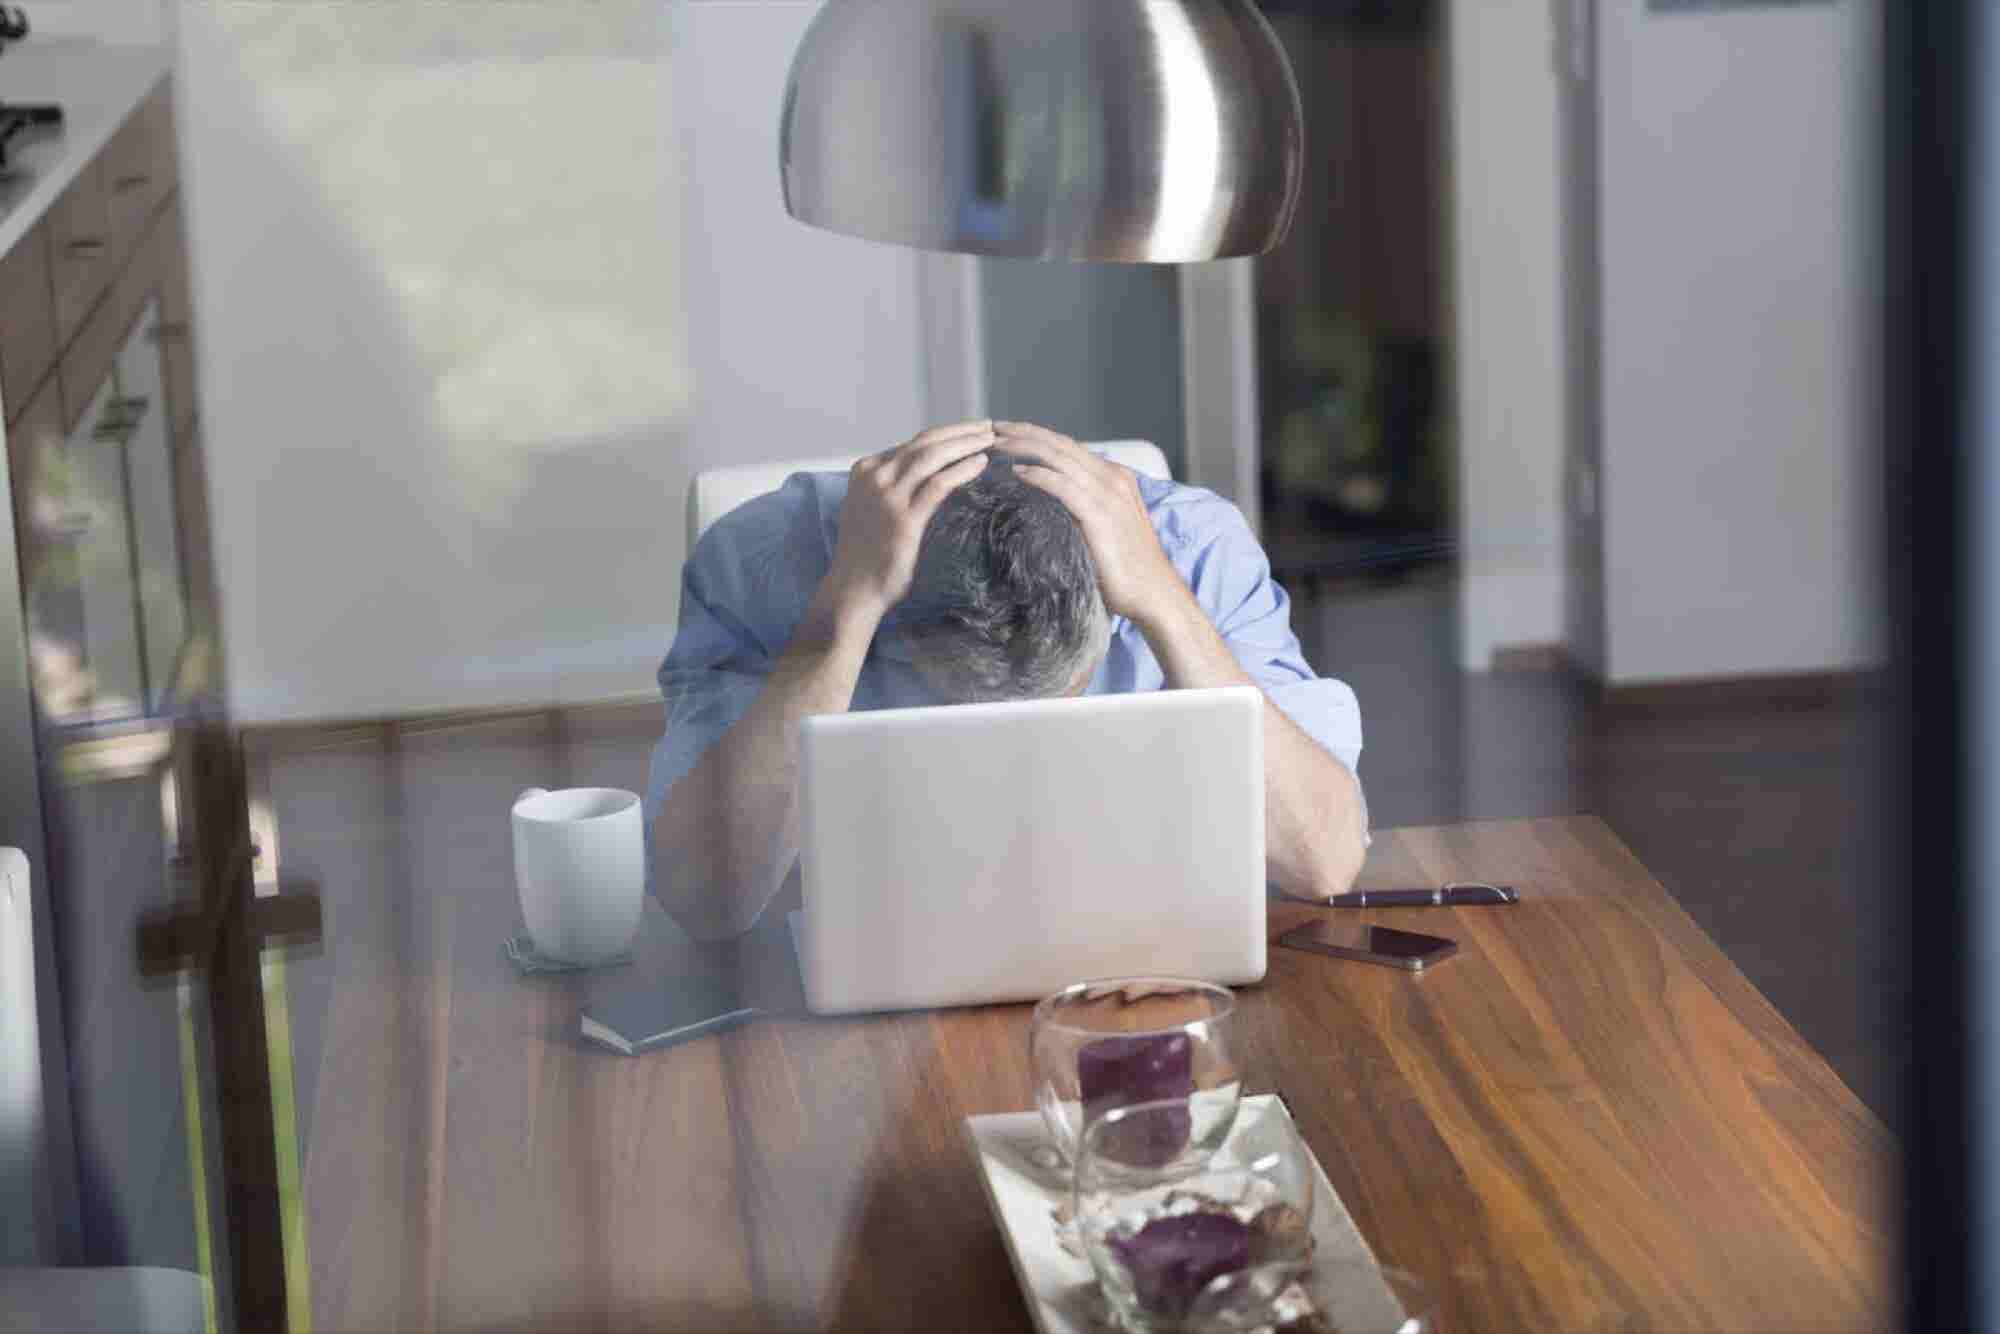 9 Activities Science Says Could Cure Entrepreneurial Burnout